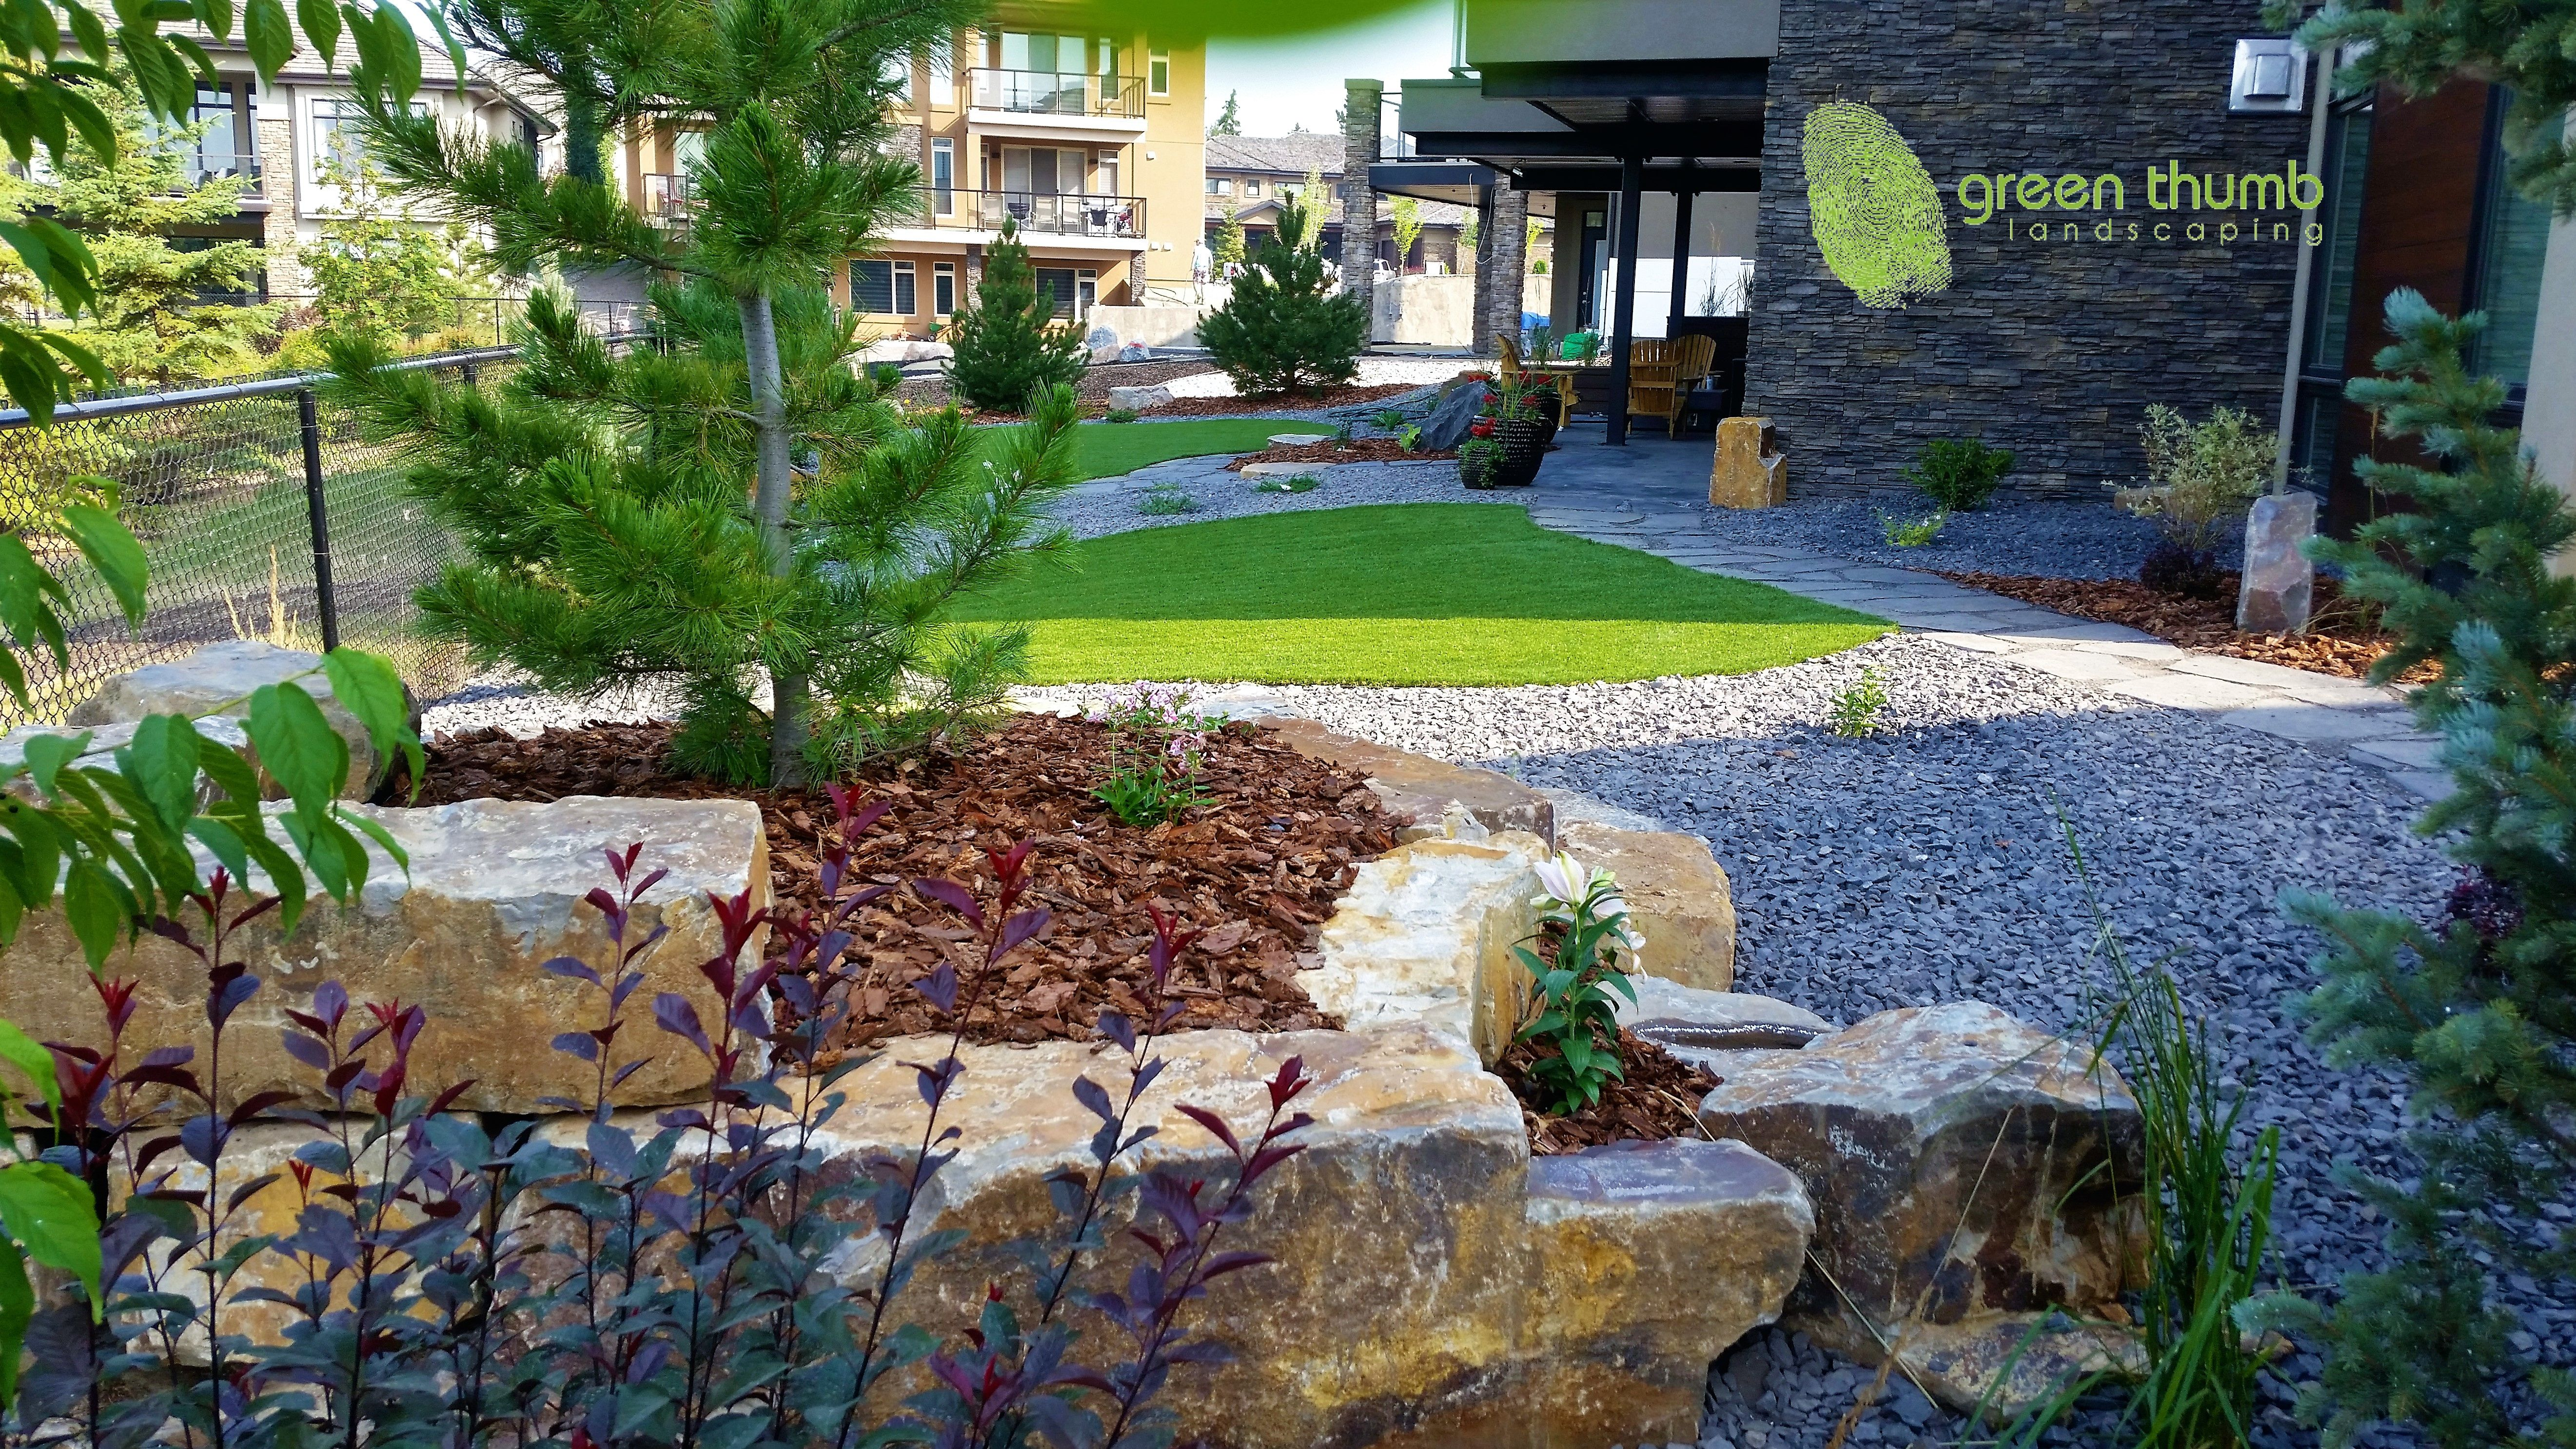 Artificial turf can be installed in small or large areas. It is a great way to minimize time spent working in the yard and to maximize time spent enjoying your yard.